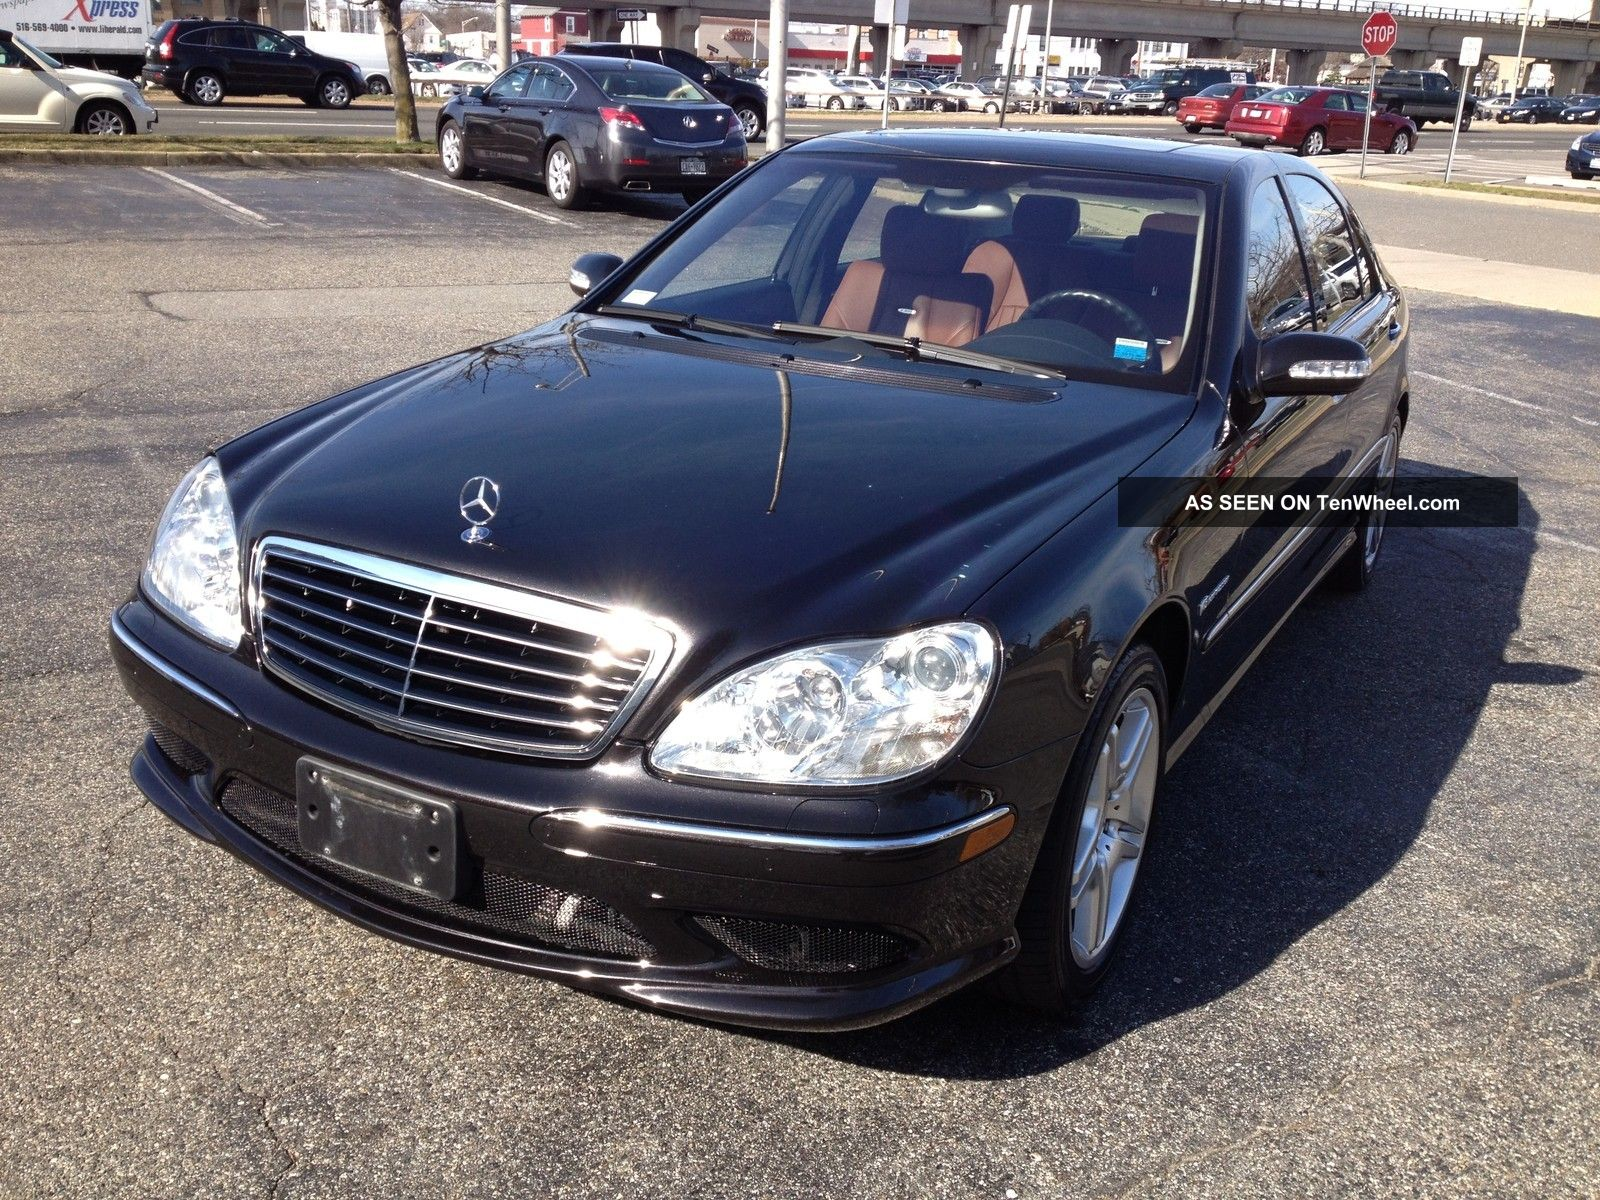 2003 mercedes benz s55 amg kompressor sedan 4 door 5 5l for Mercedes benz s55